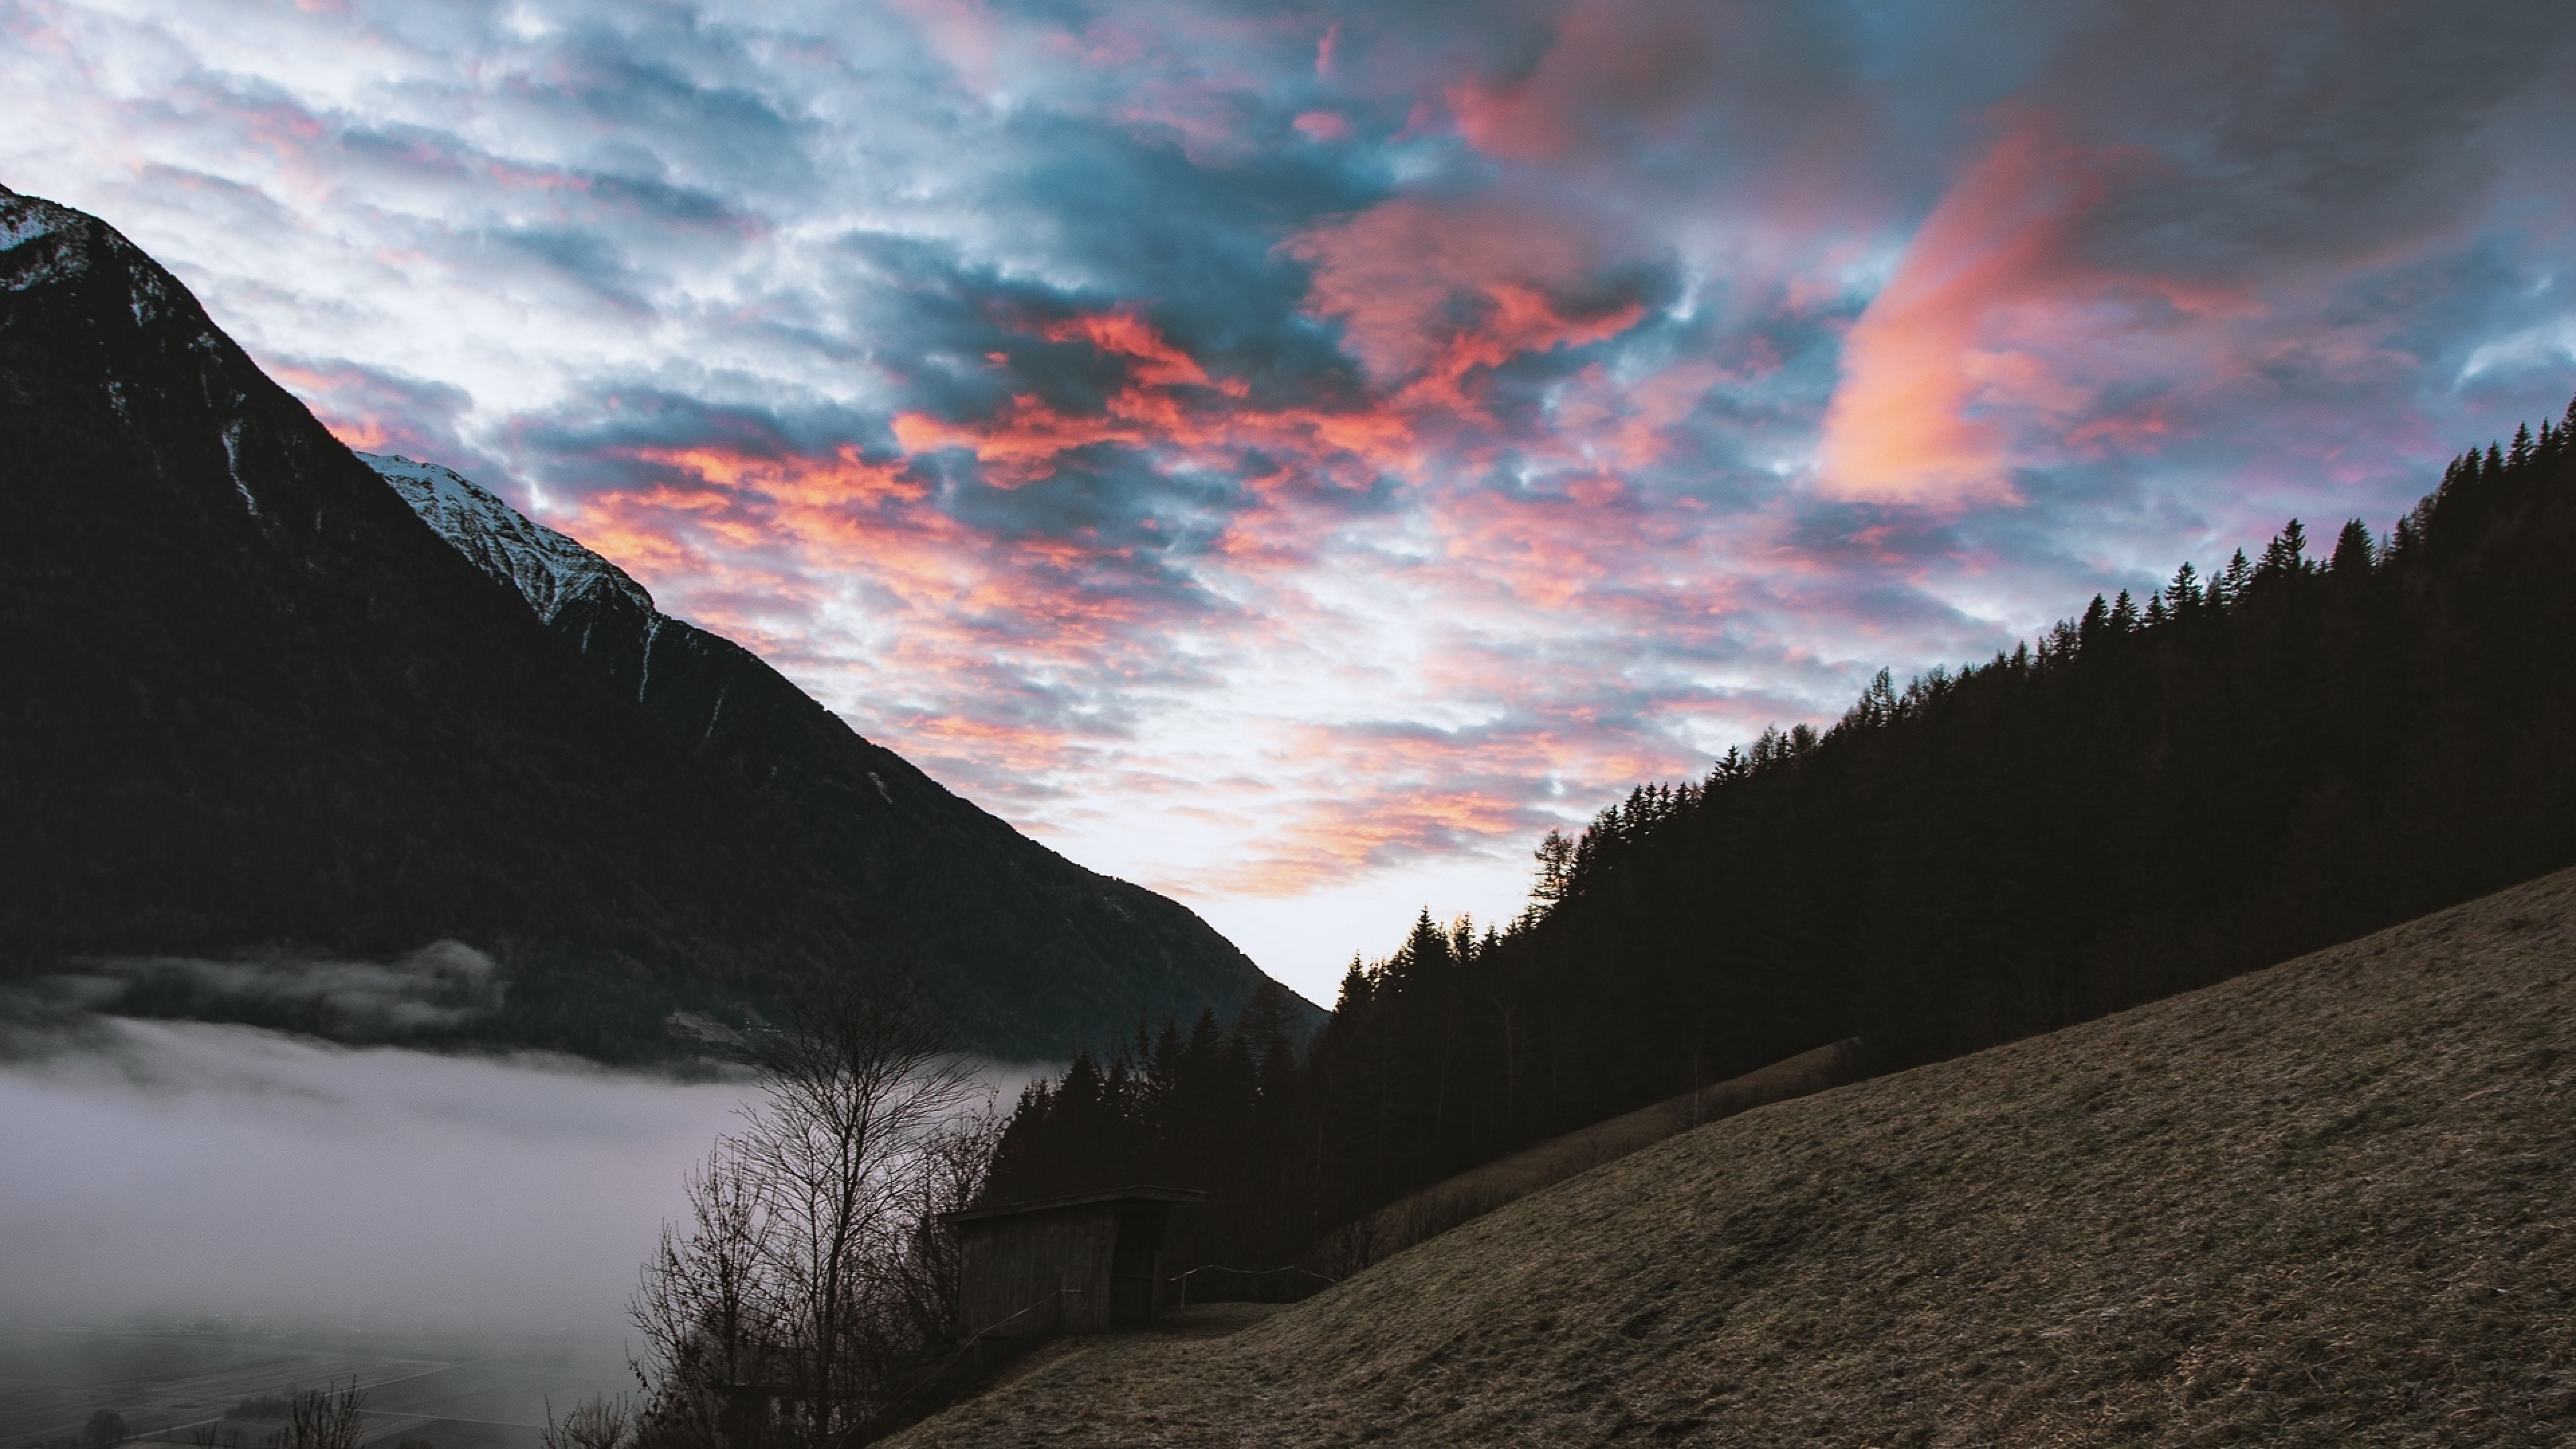 Cloudy Sky Ovee The Mountains Of Italy Hd Wallpaper 4k Ultra